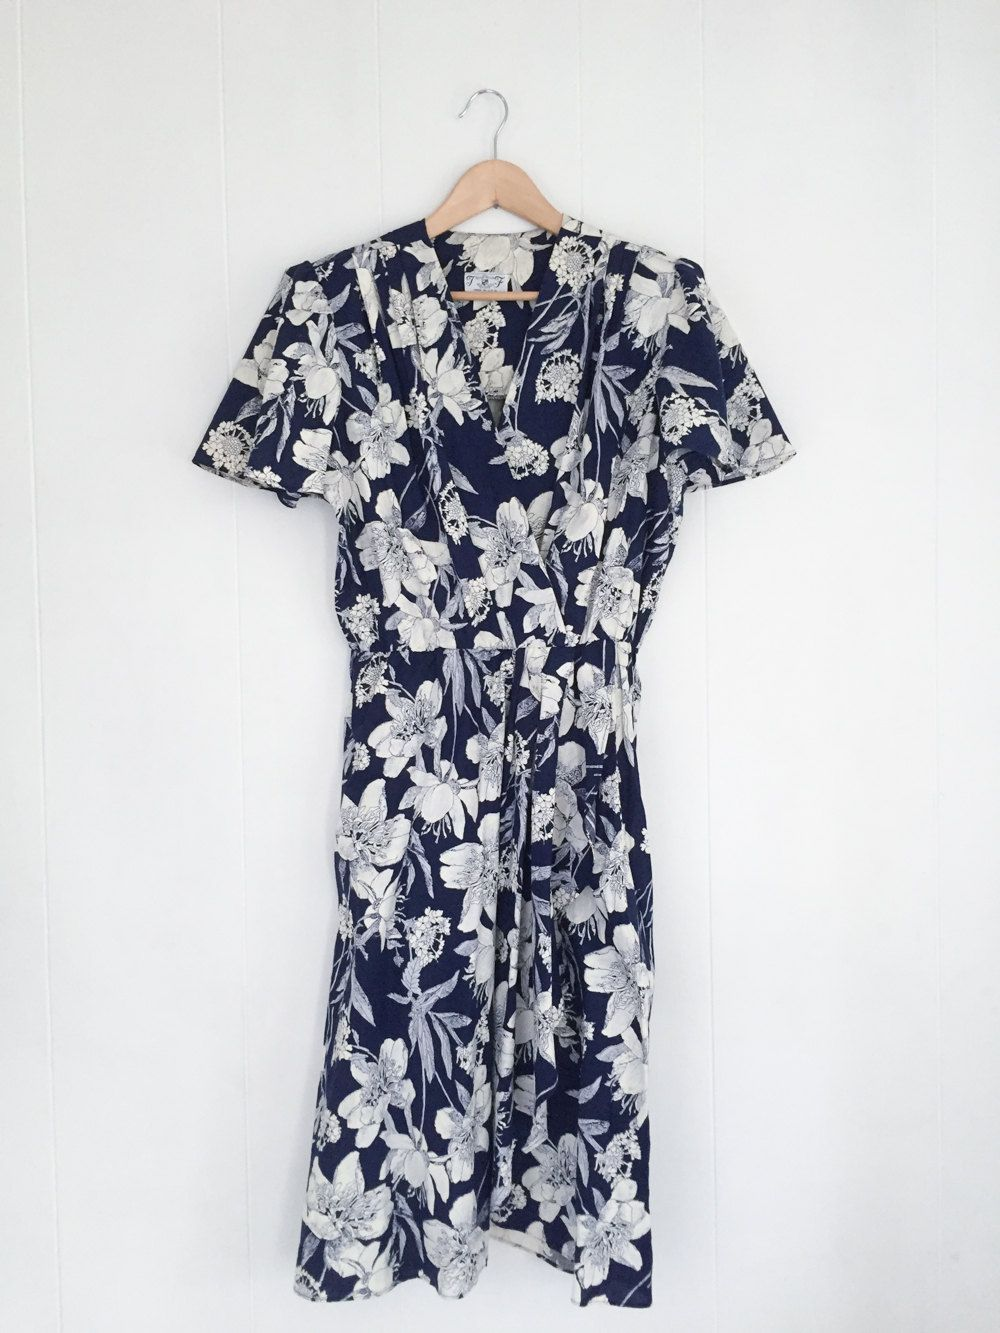 80s floral dress summer dress vintage short sleeve dress flower vintage dress floral dress boho dresses for women flower print dress cotton dress blue and white vintage clothing made usa izmirmasajfo